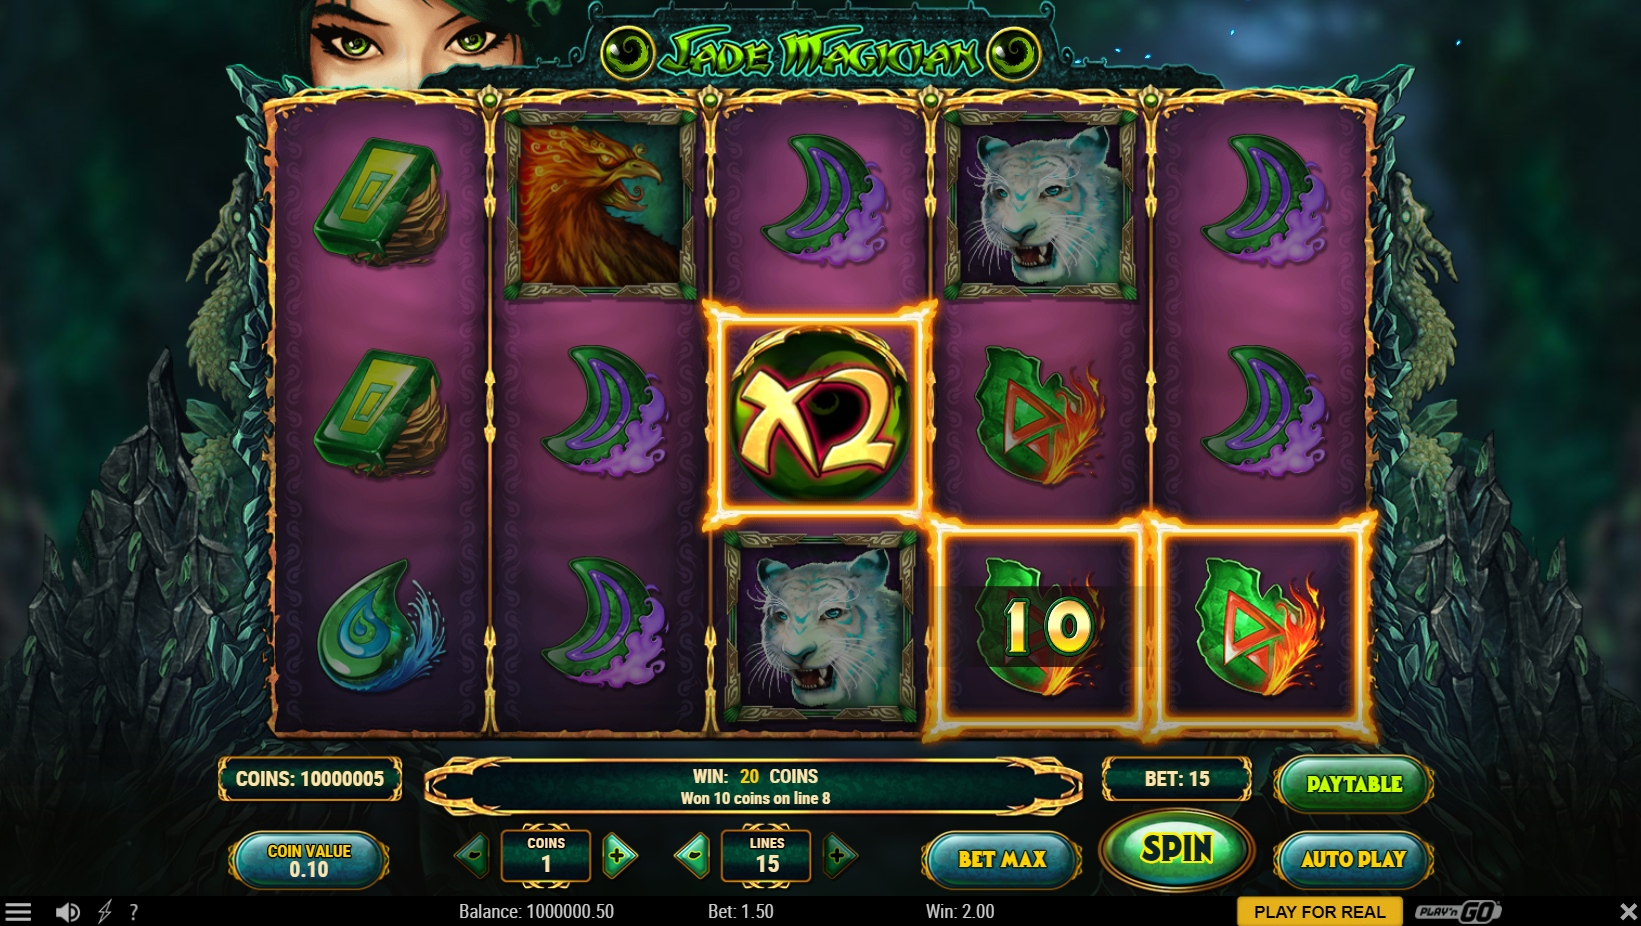 Play new Bitcoin slot game from Play'n Go - Jade Magician